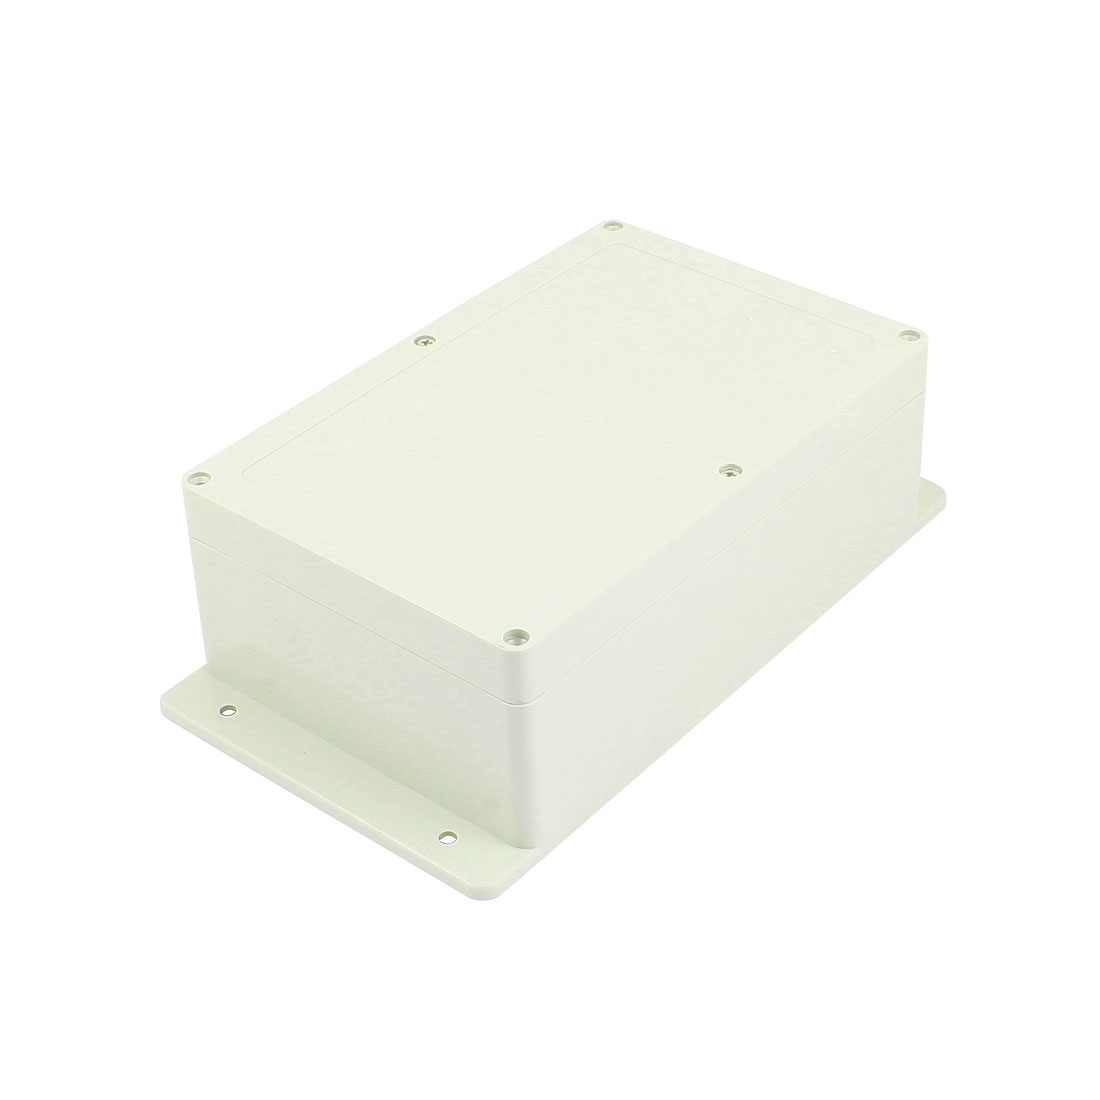 Dustproof IP65 Junction Box DIY Terminal Connection Enclosure Adaptable 222mm x 142mm x 78mm